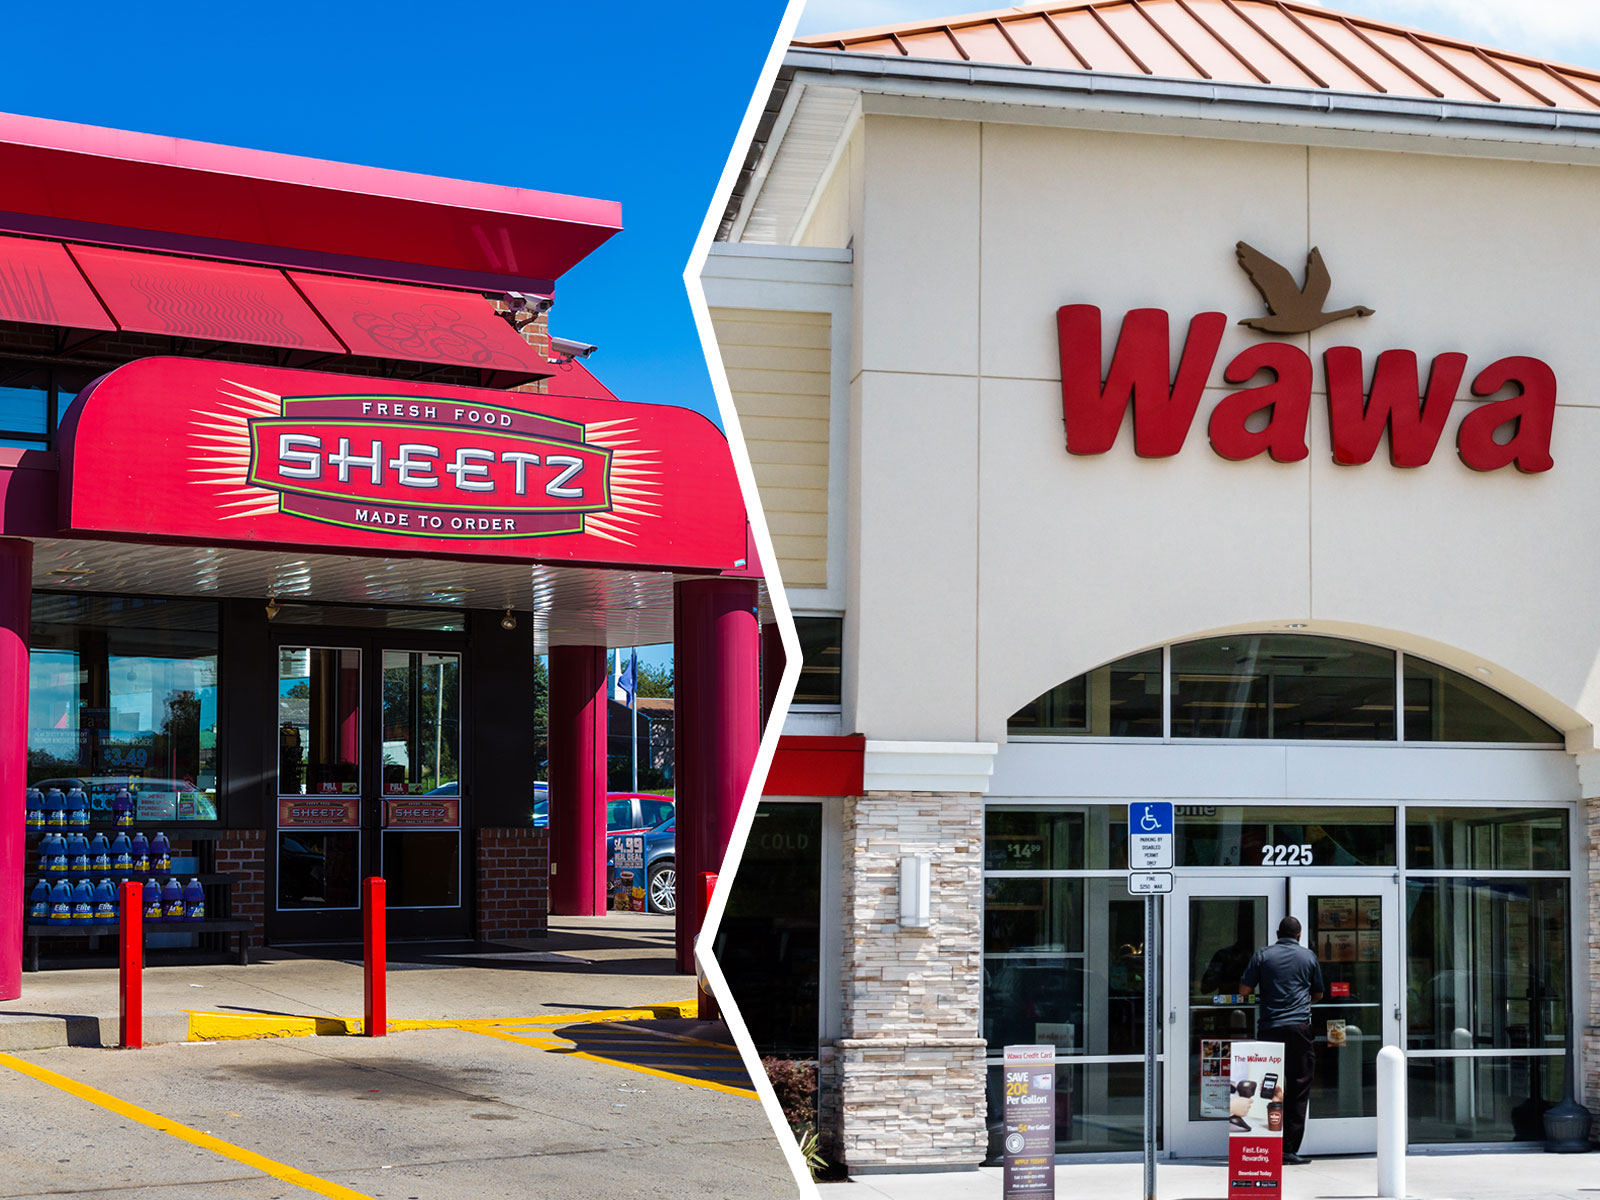 Sheetz vs. Wawa